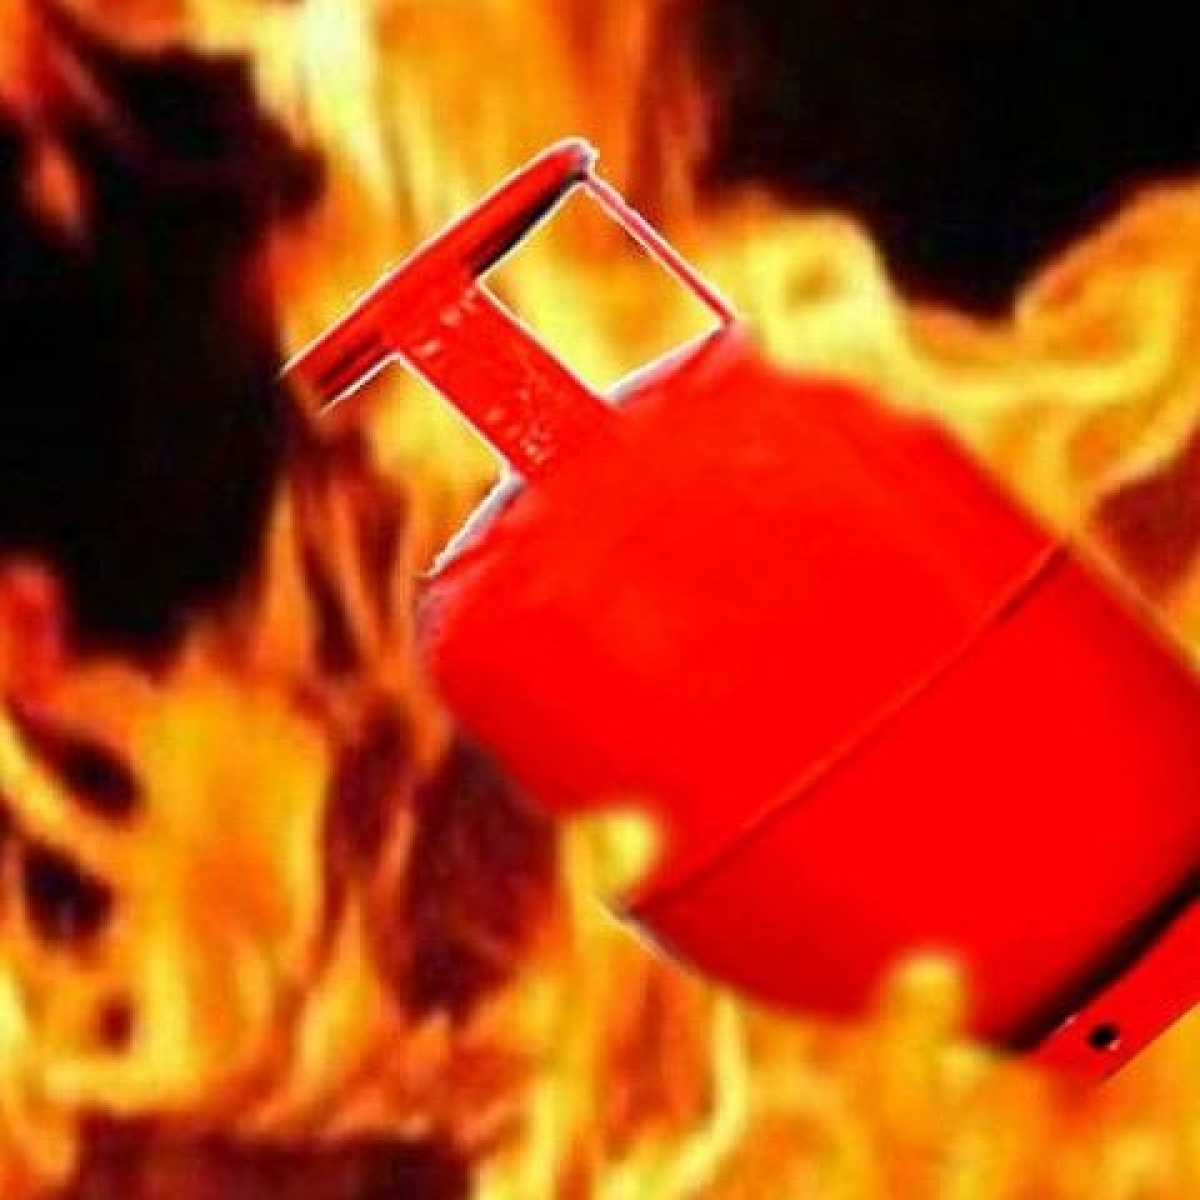 One killed, seven hurt in LPG explosion in Pune